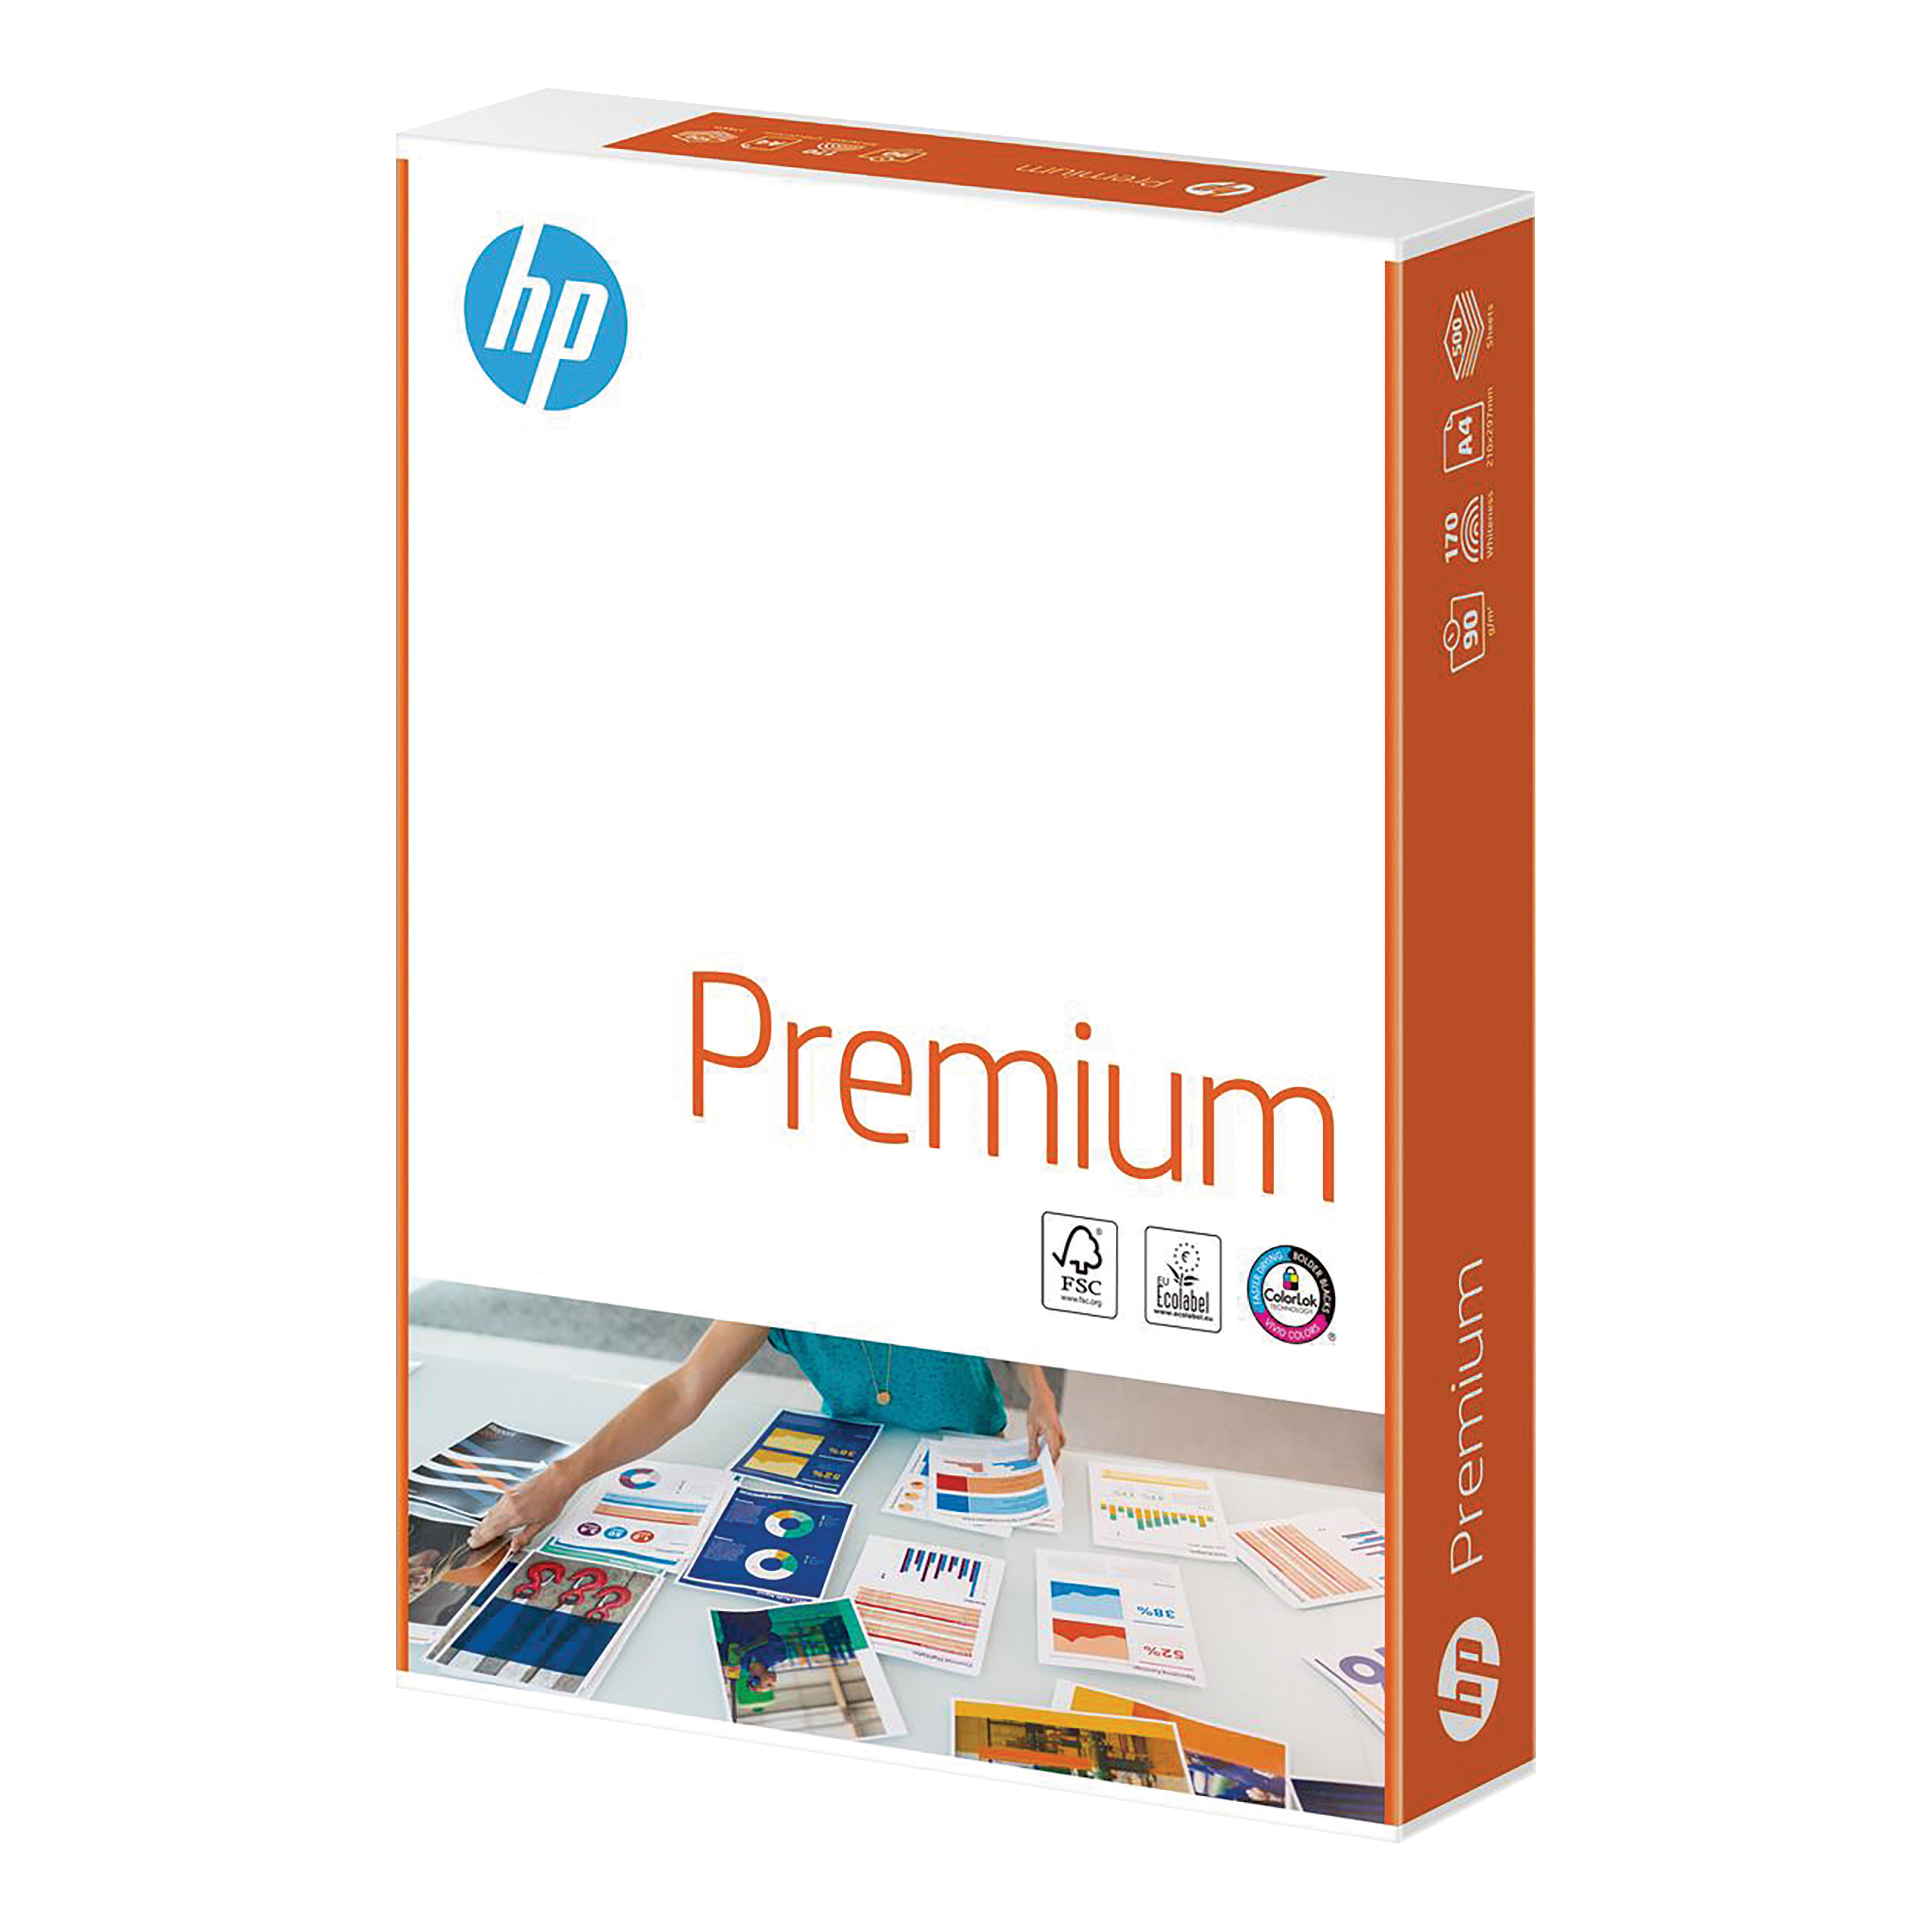 Hewlett Packard HP Premium Paper FSC Colorlok Ream-wrapped 90gsm A4 White Ref 94293 500 Sheets